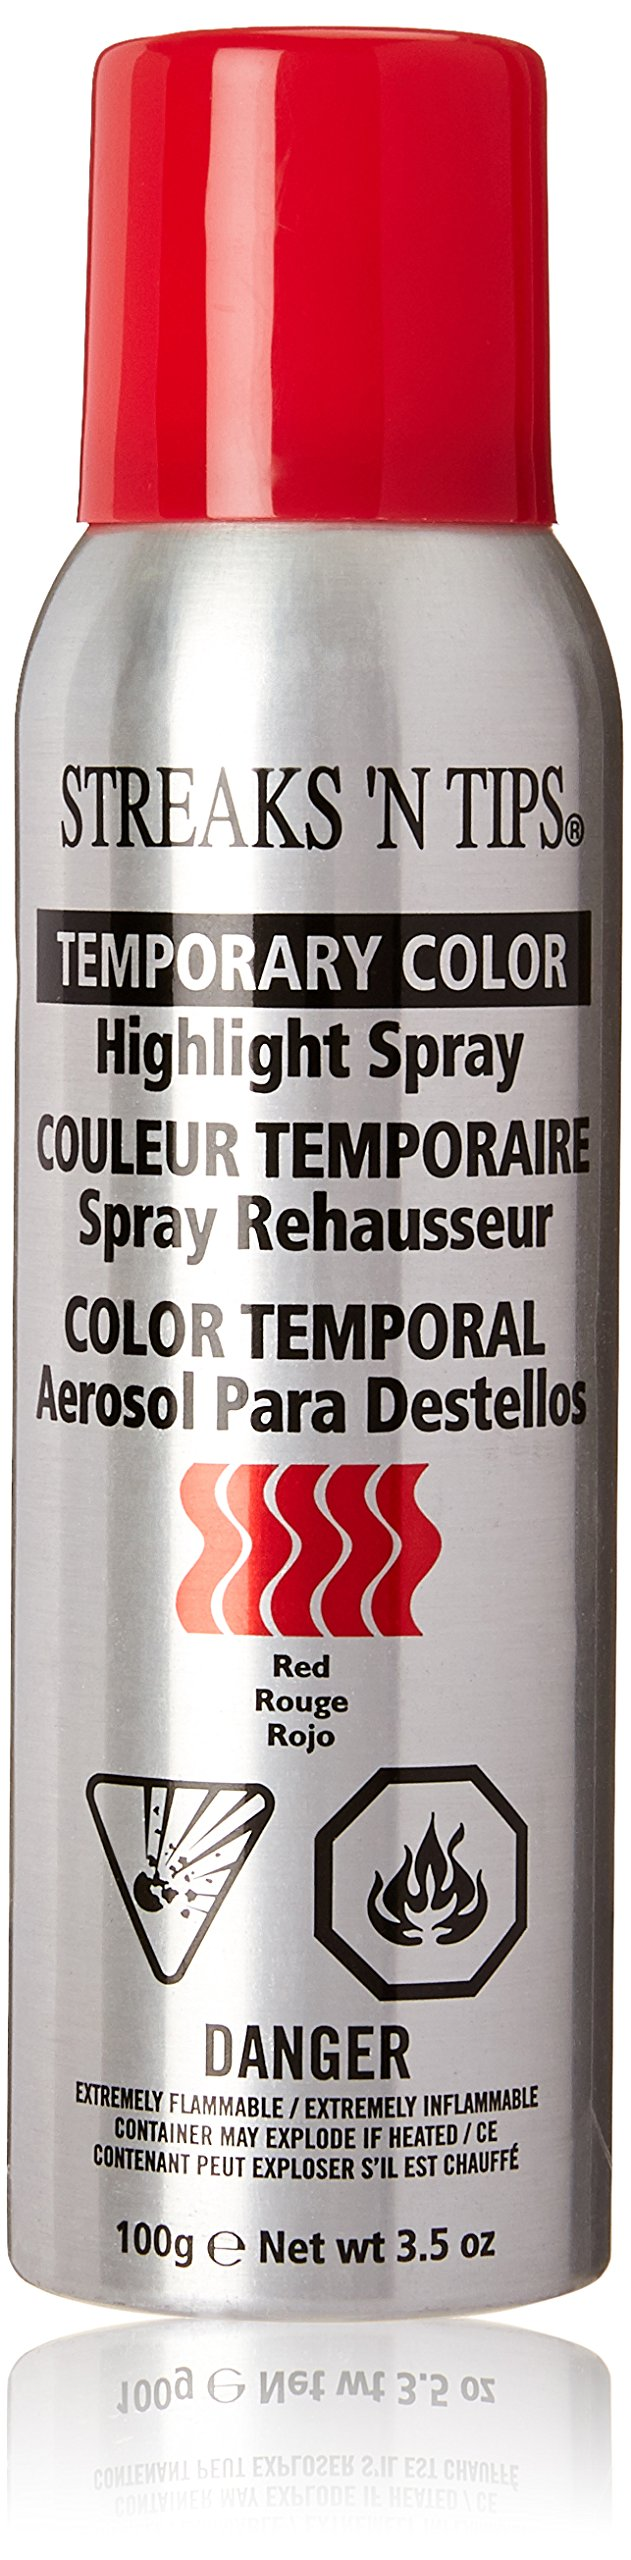 Clubman Streaks N Tips Neon Red Highlight Spray, 3.5 Ounce. It's easily removed with soap and water. Streaks and tips has long been a motion picture industry standard. Great for actors or kids when dressing up in costumes.